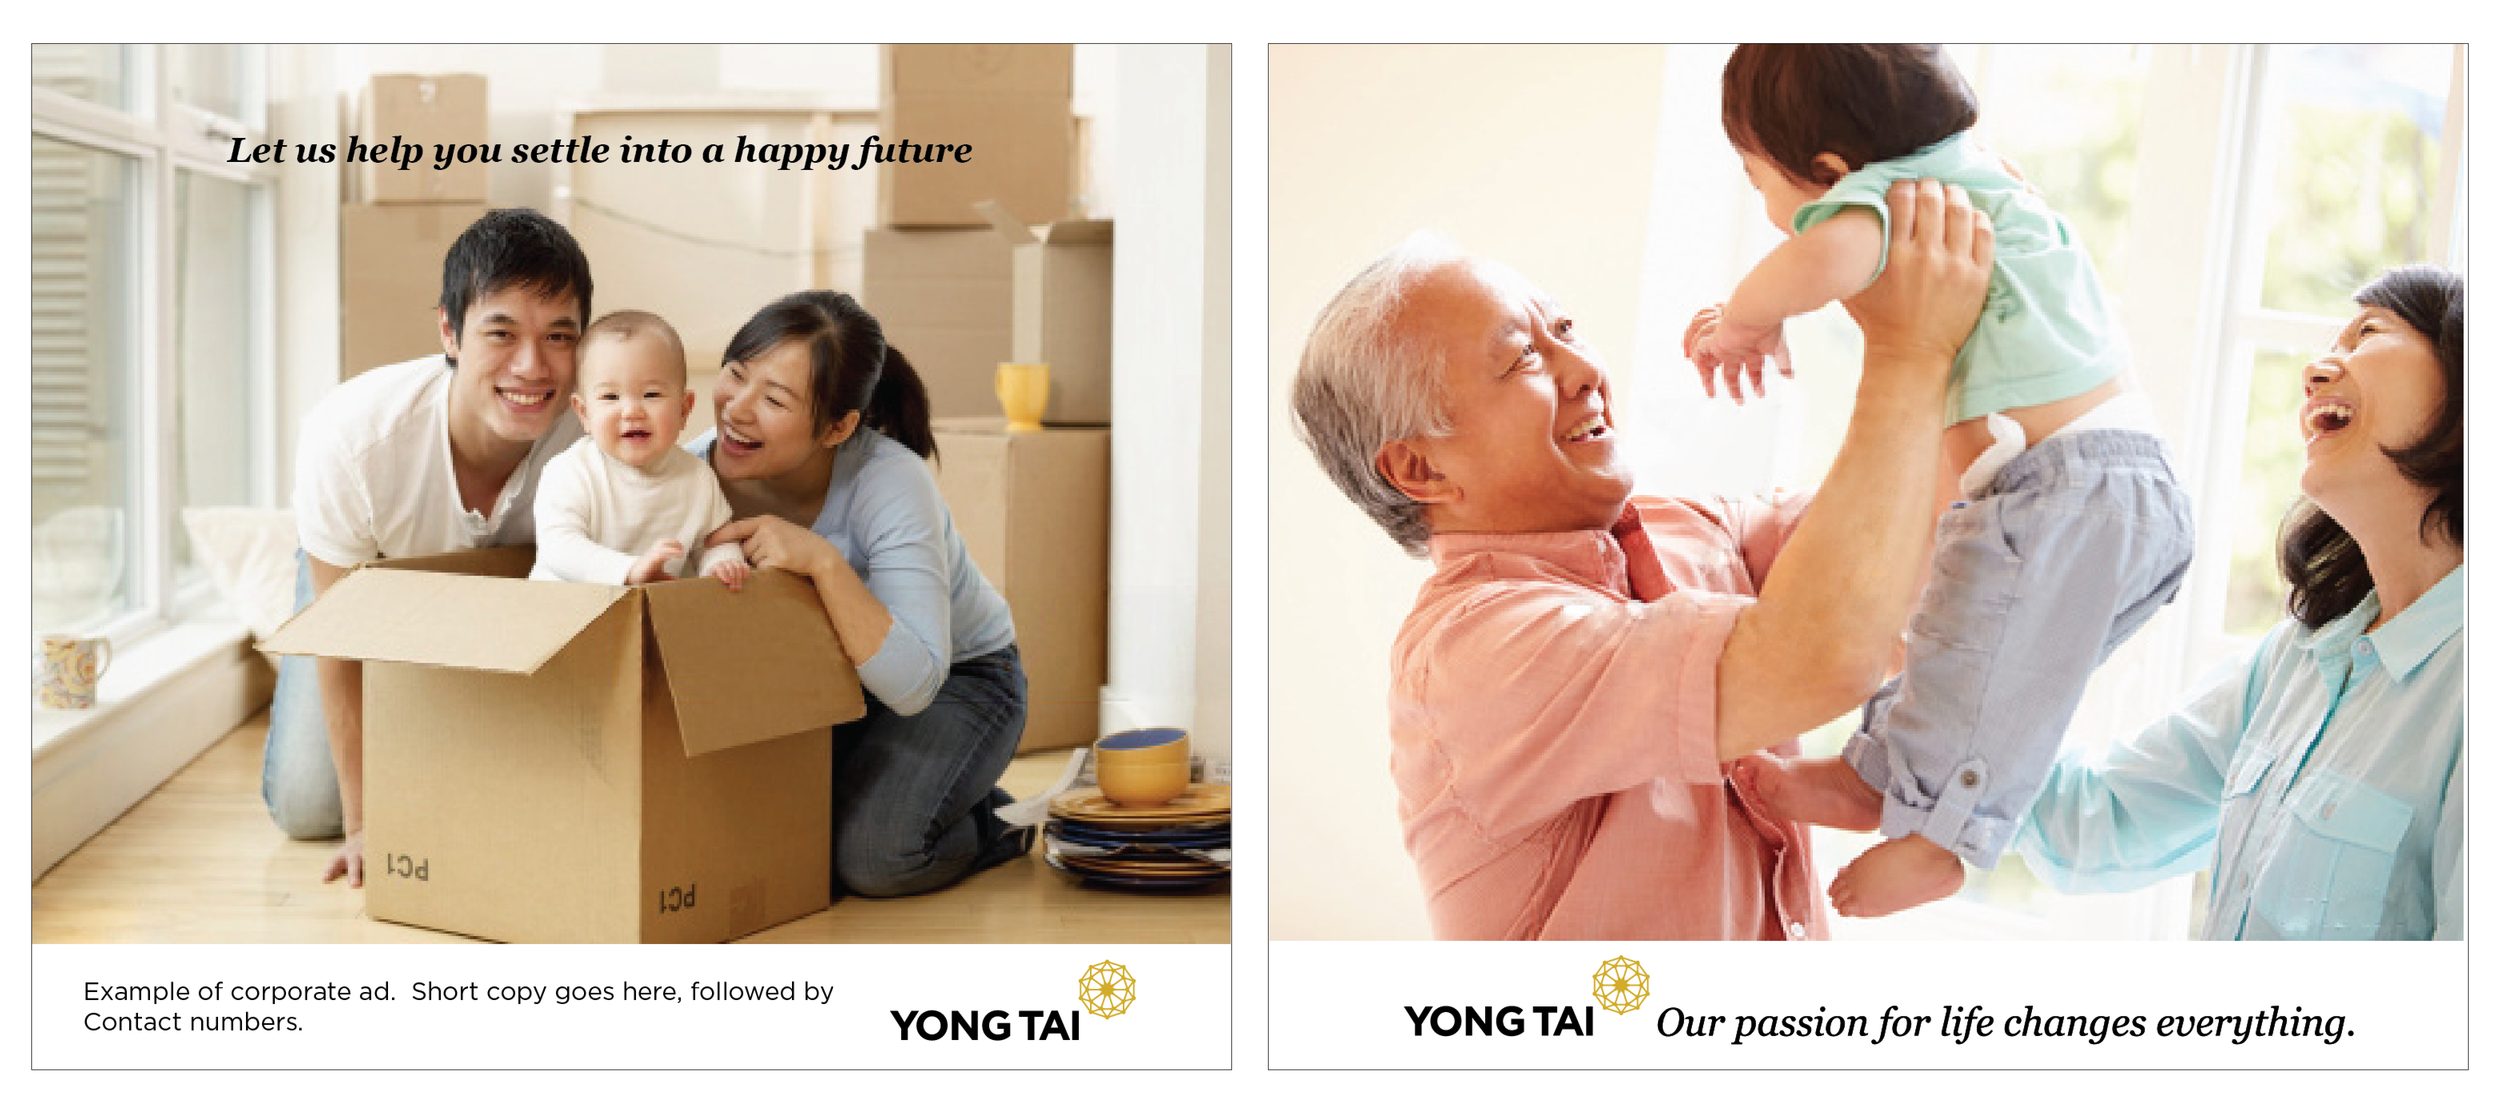 Pages from Yong Tai's visual identity guidelines